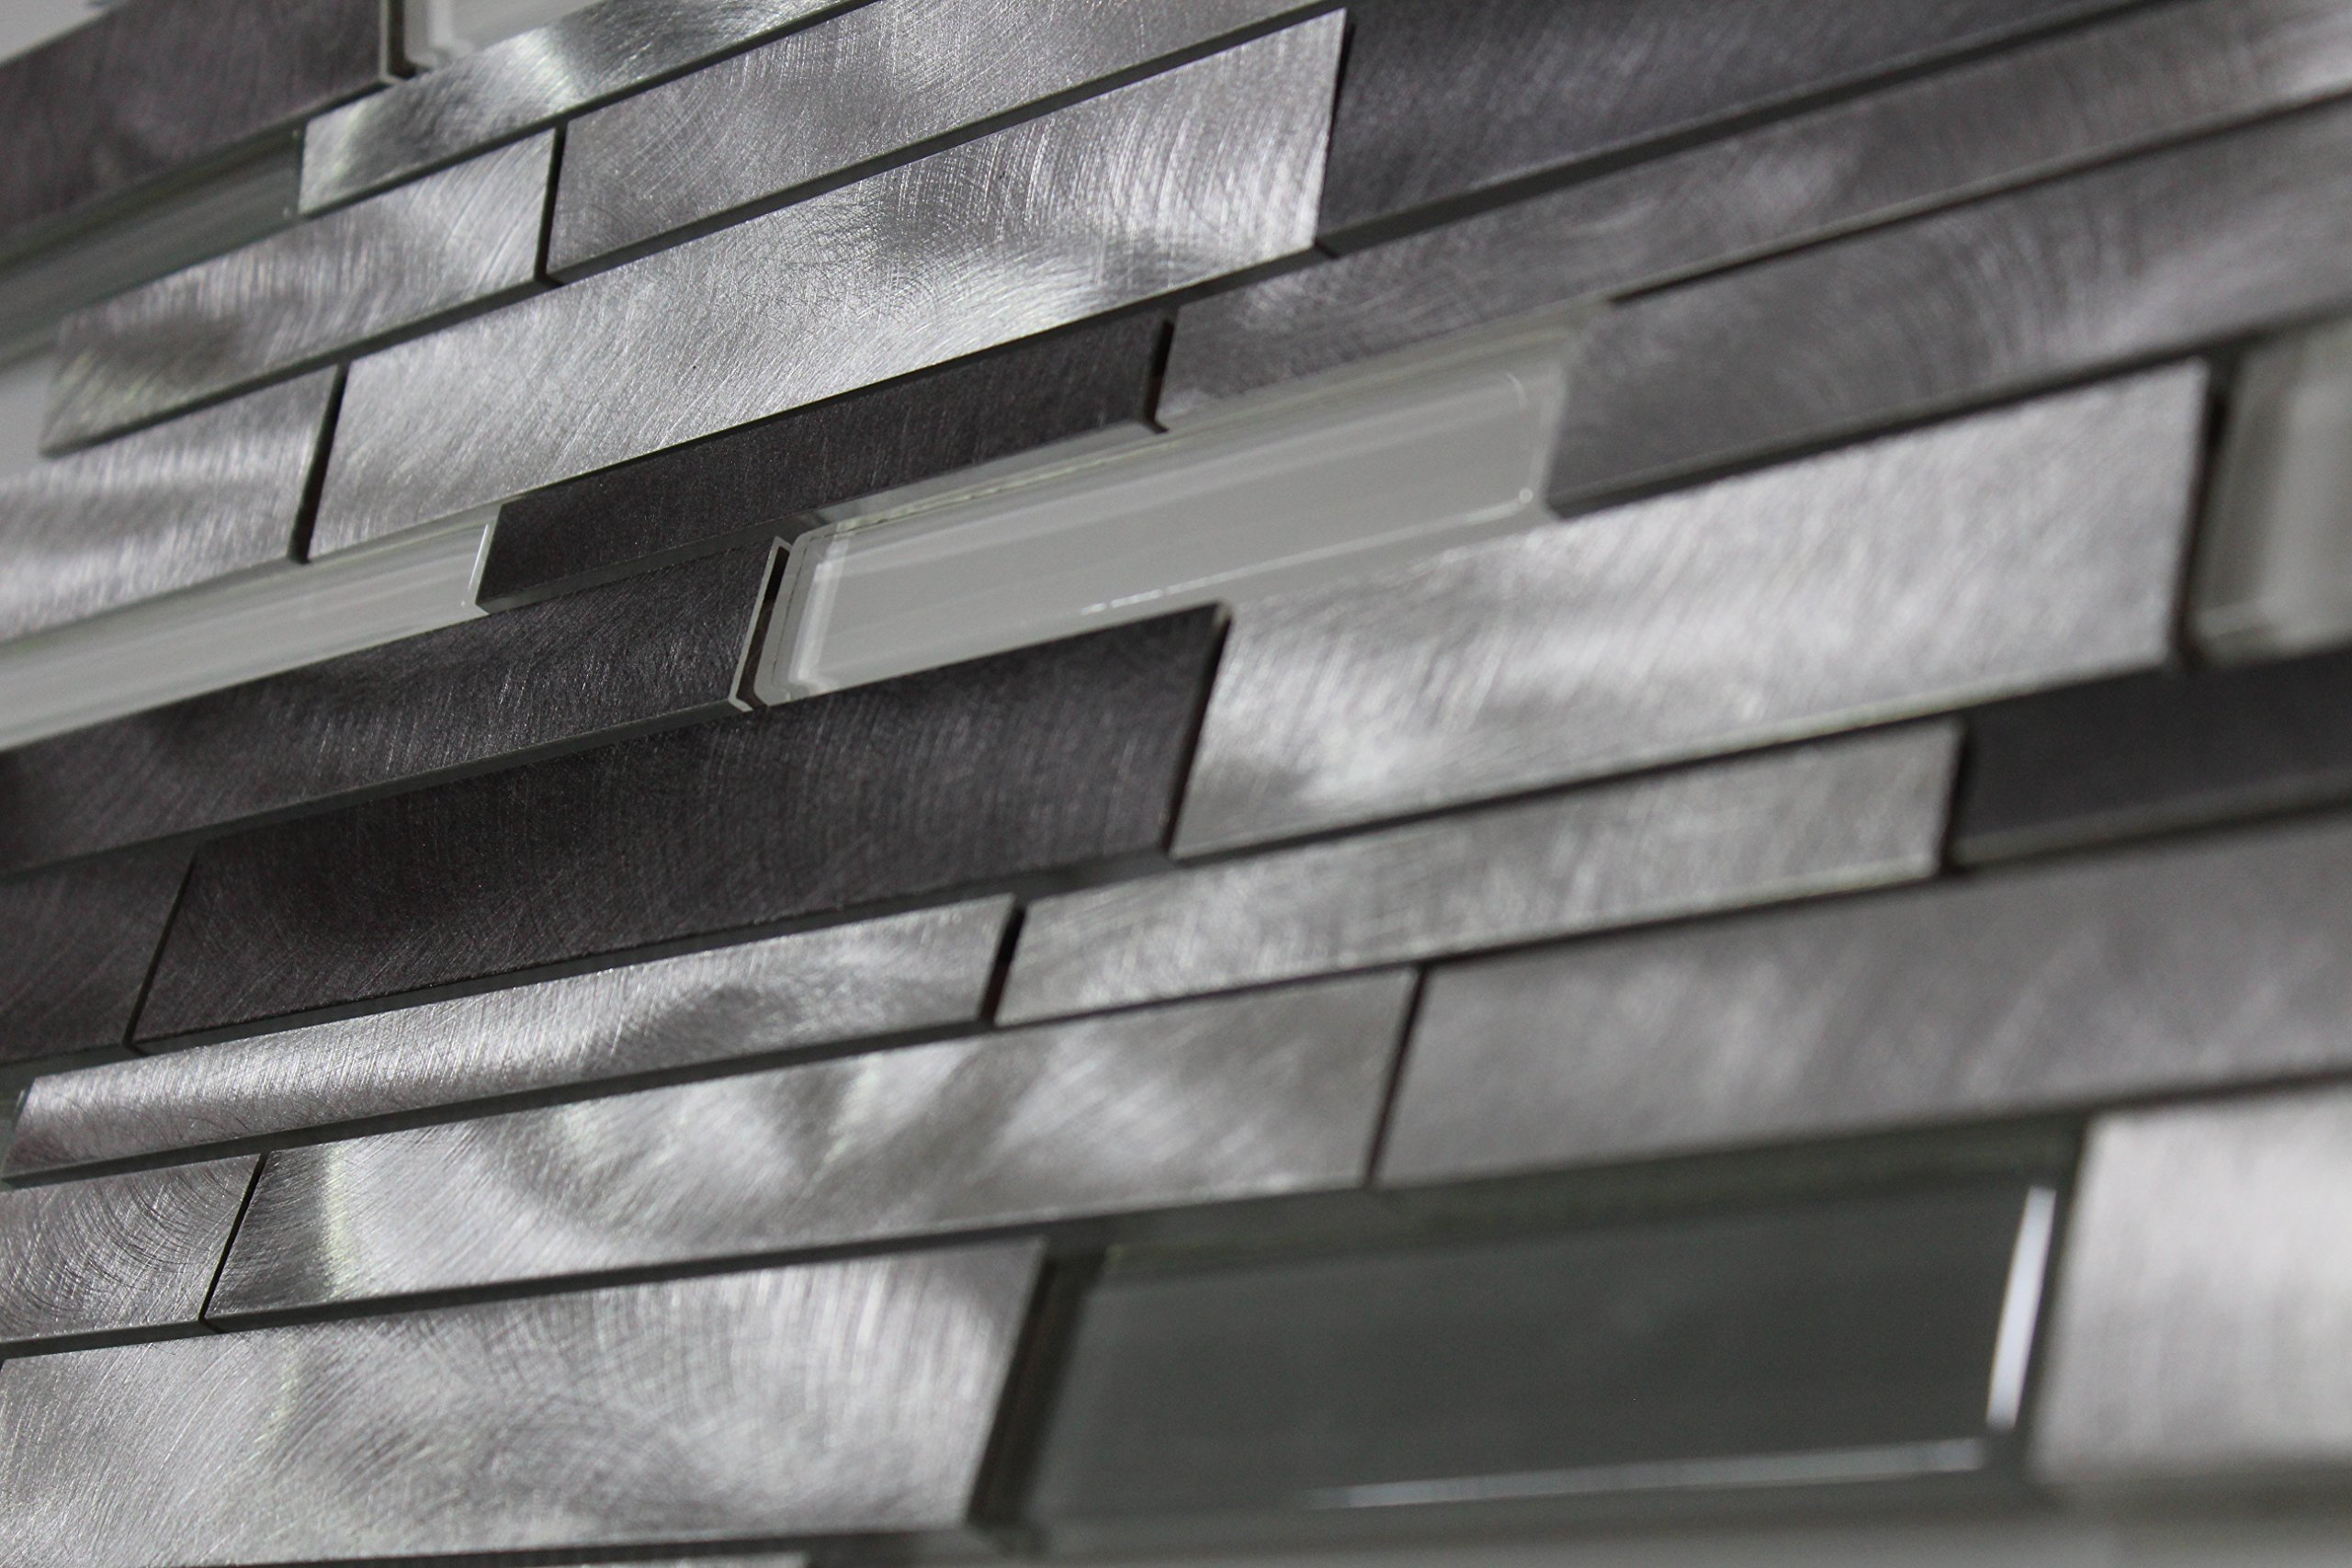 WS Tiles: Twilight Series Interlocking Glass and Aluminum in Gray, Backsplash, Mesh-Mounted Mosaic Tile for Kitchen & Bathroom - 12 in x 12 in x 8mm - Pack of 10 Sheets